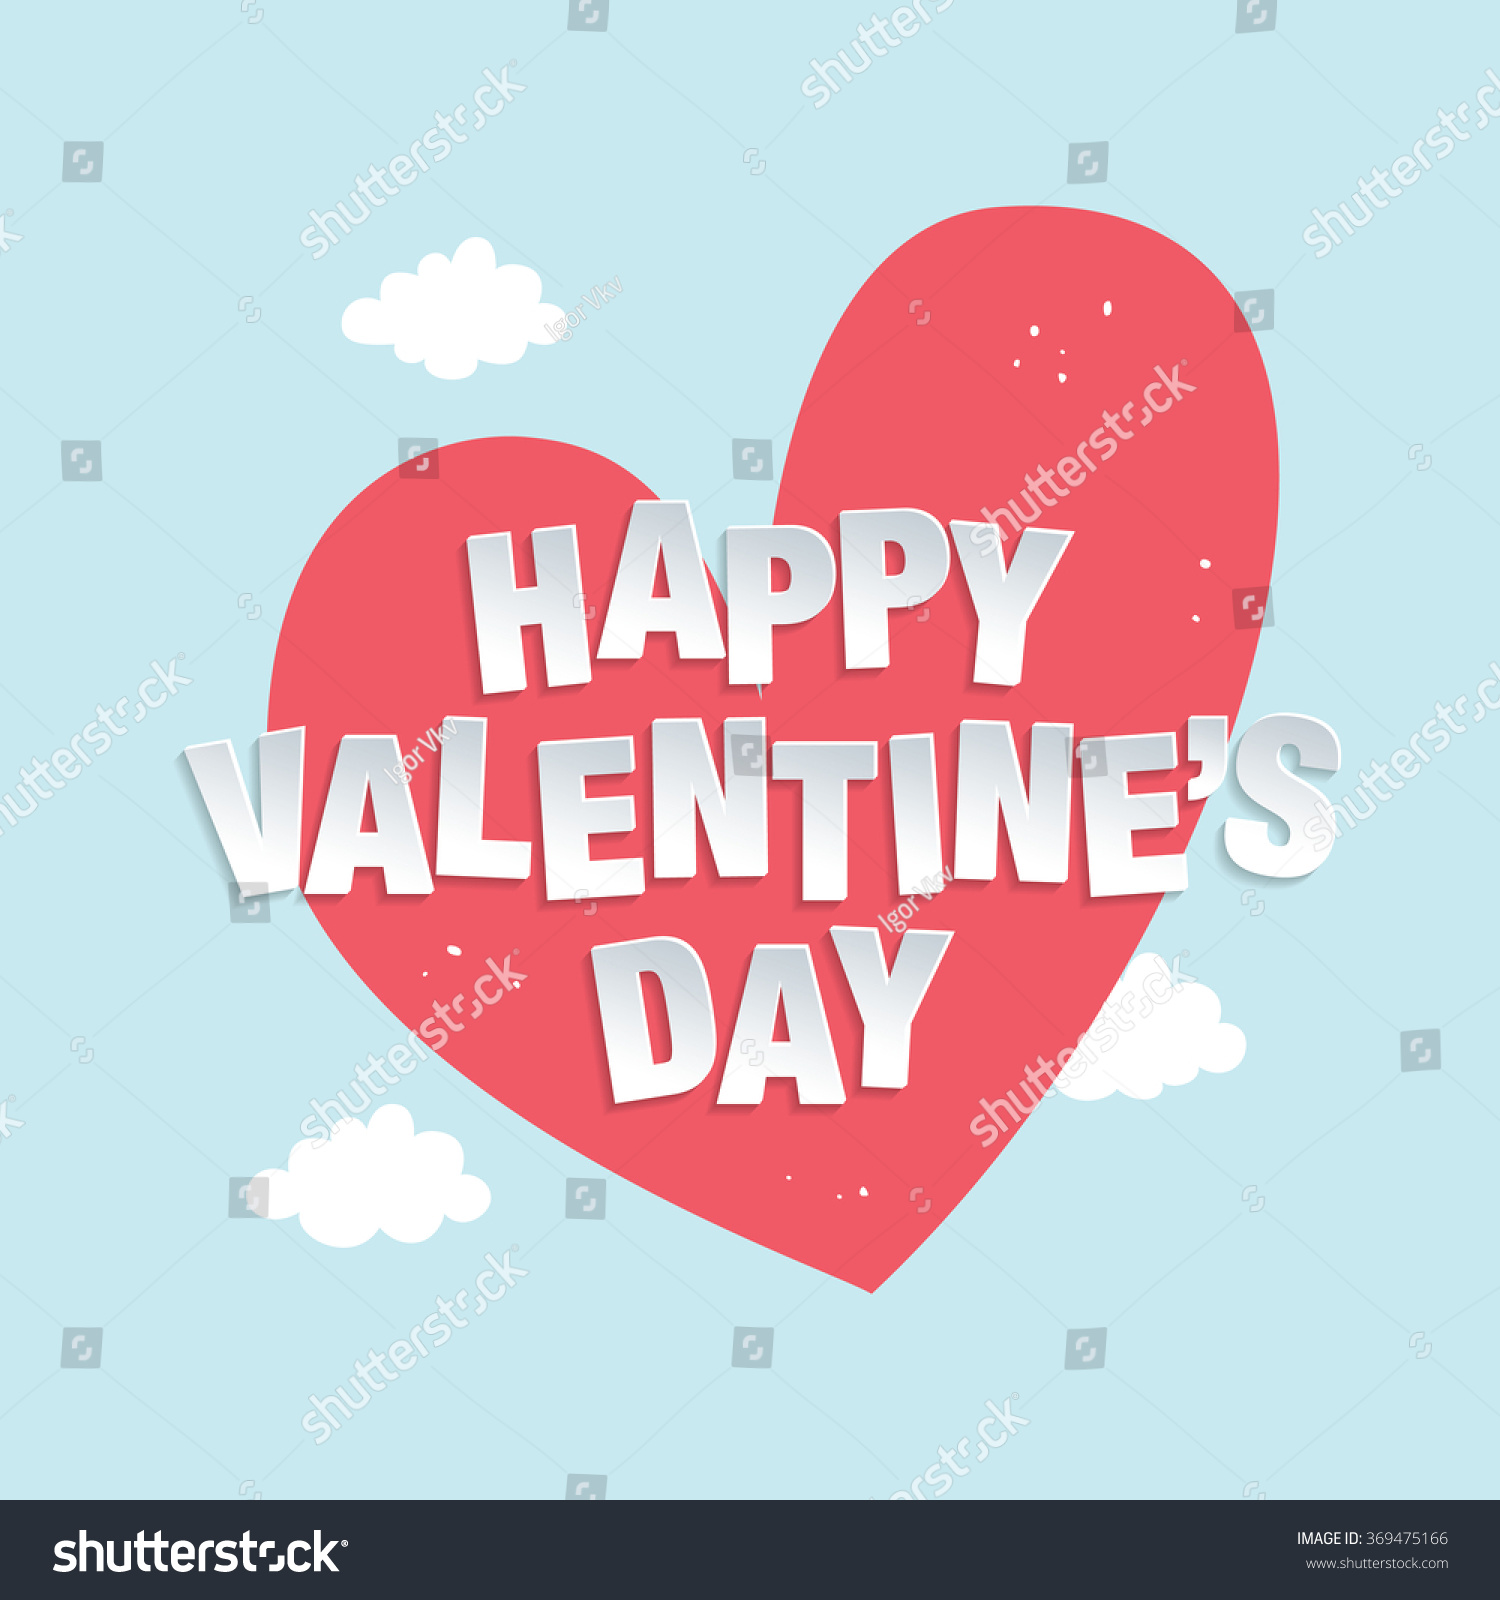 Happy Valentines Day Greeting Card Stock Vector 369475166 Shutterstock